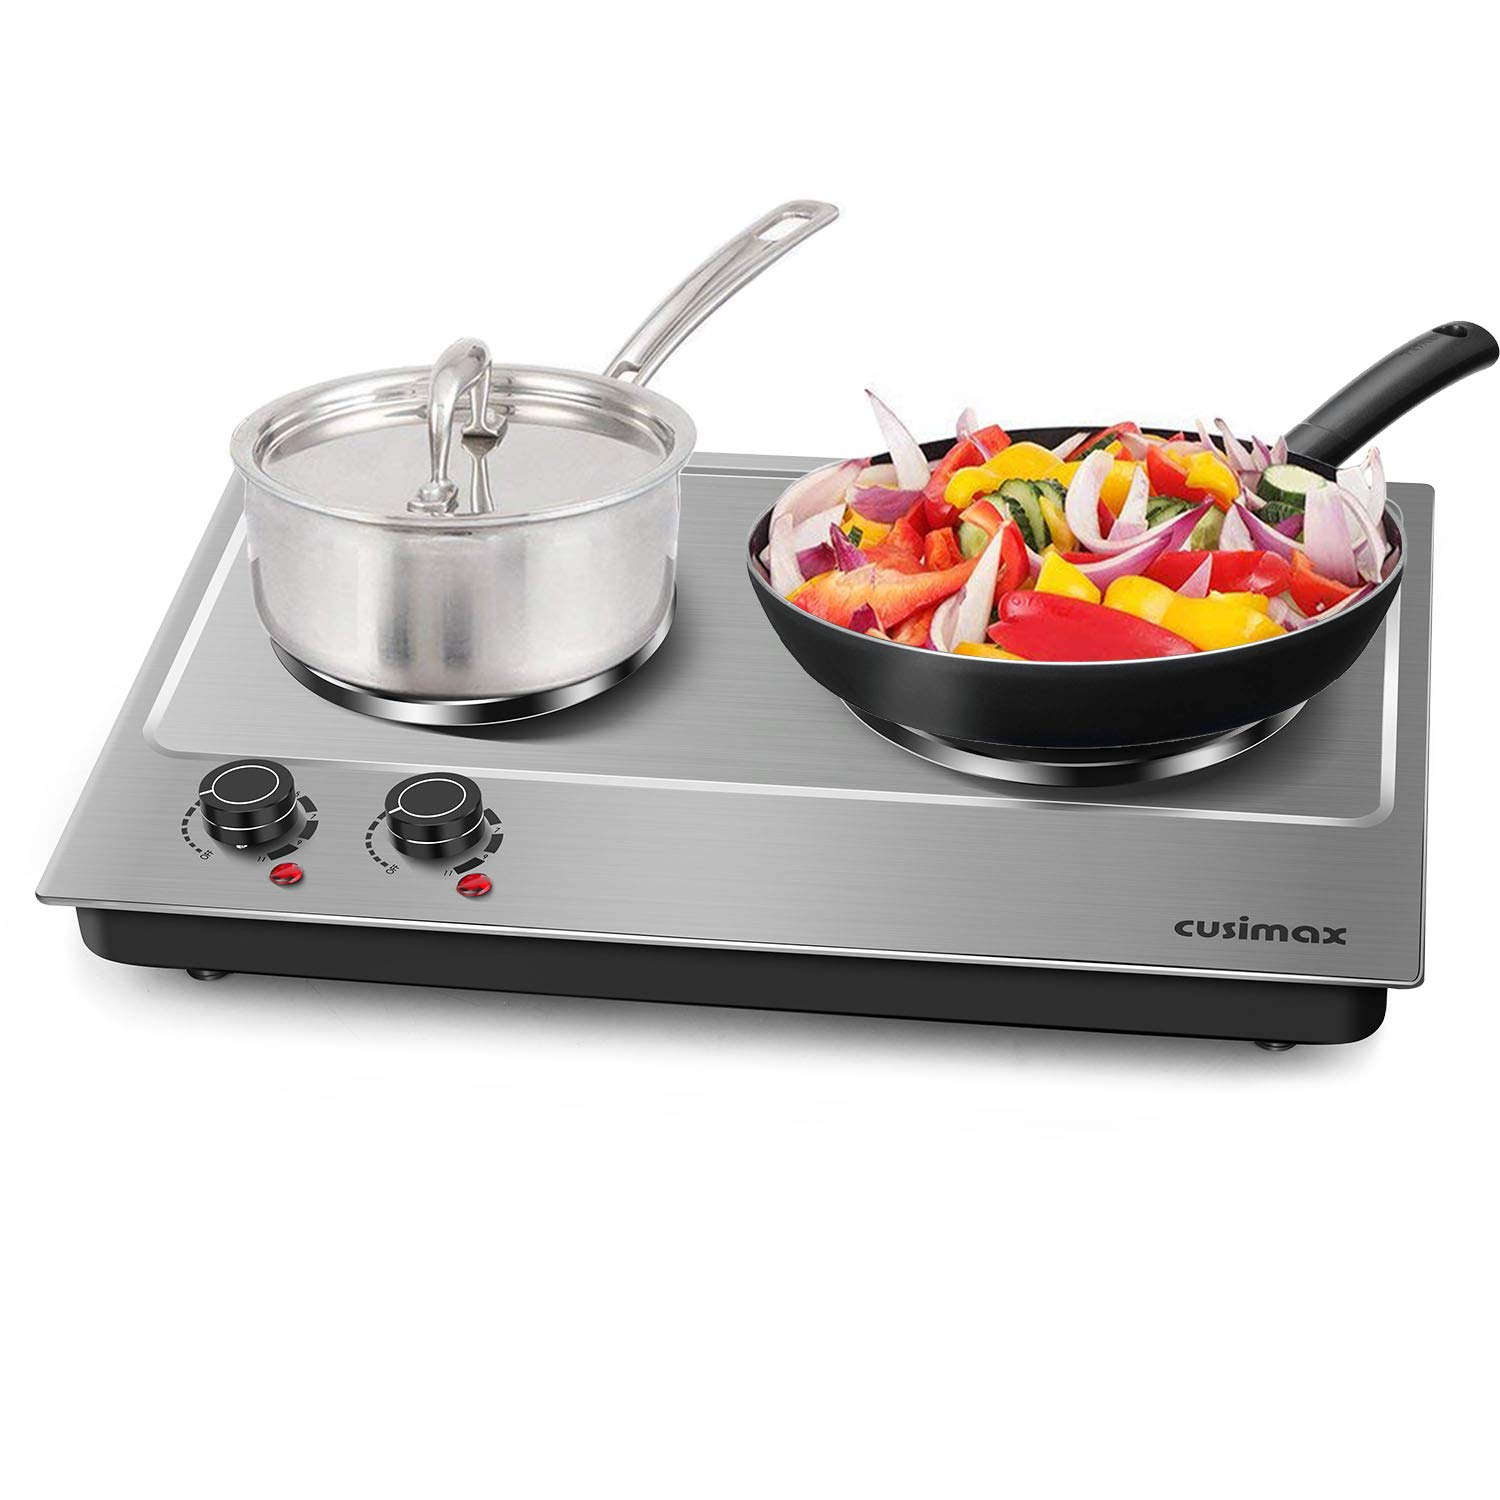 Cusimax Hot Plate Electric Double Burner Cast Iron Heating Plate Indoor&Outdoor Stove - Portable Electric Stove Tops